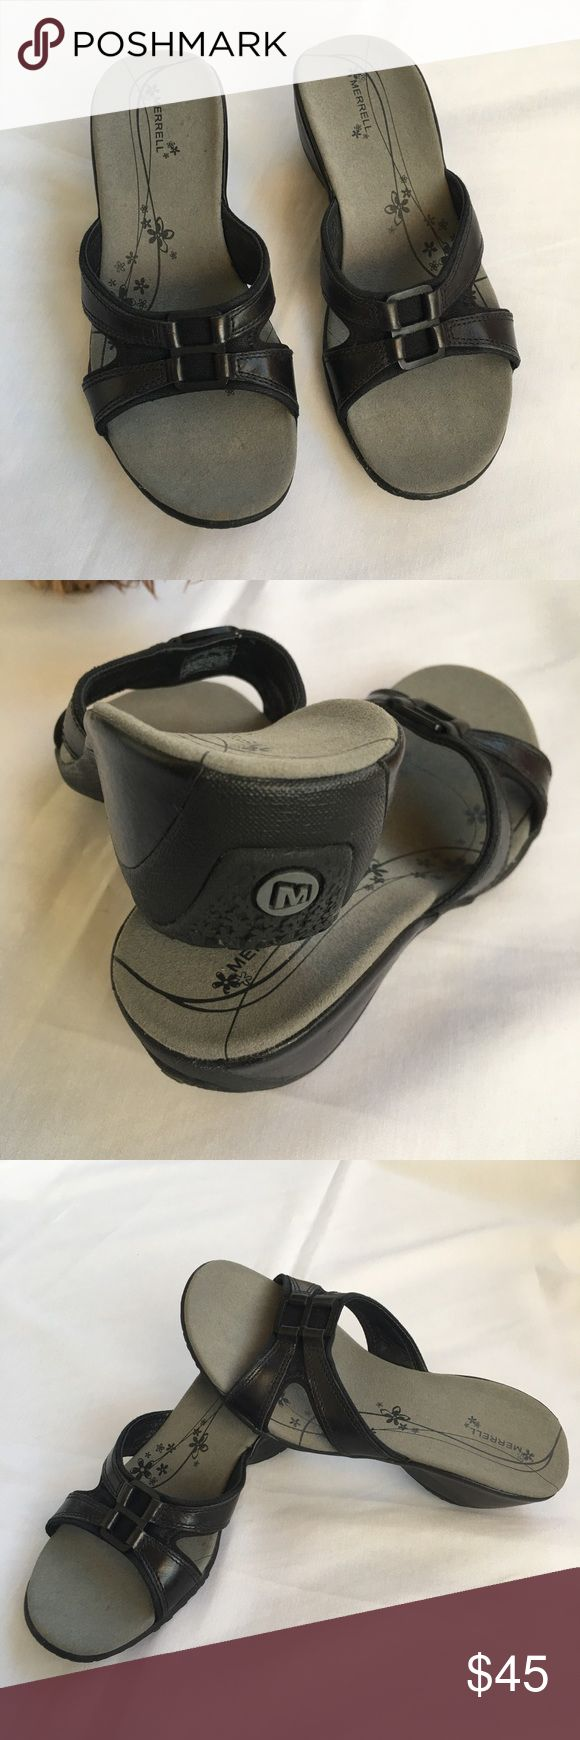 Merrill Sandals Merrill Vibram  Sandals , Air cushion heels hadn't been wore but a couple of times EUC excellent used condition. Leather size 6 , heels are 2 inches high. Merrell Shoes Sandals